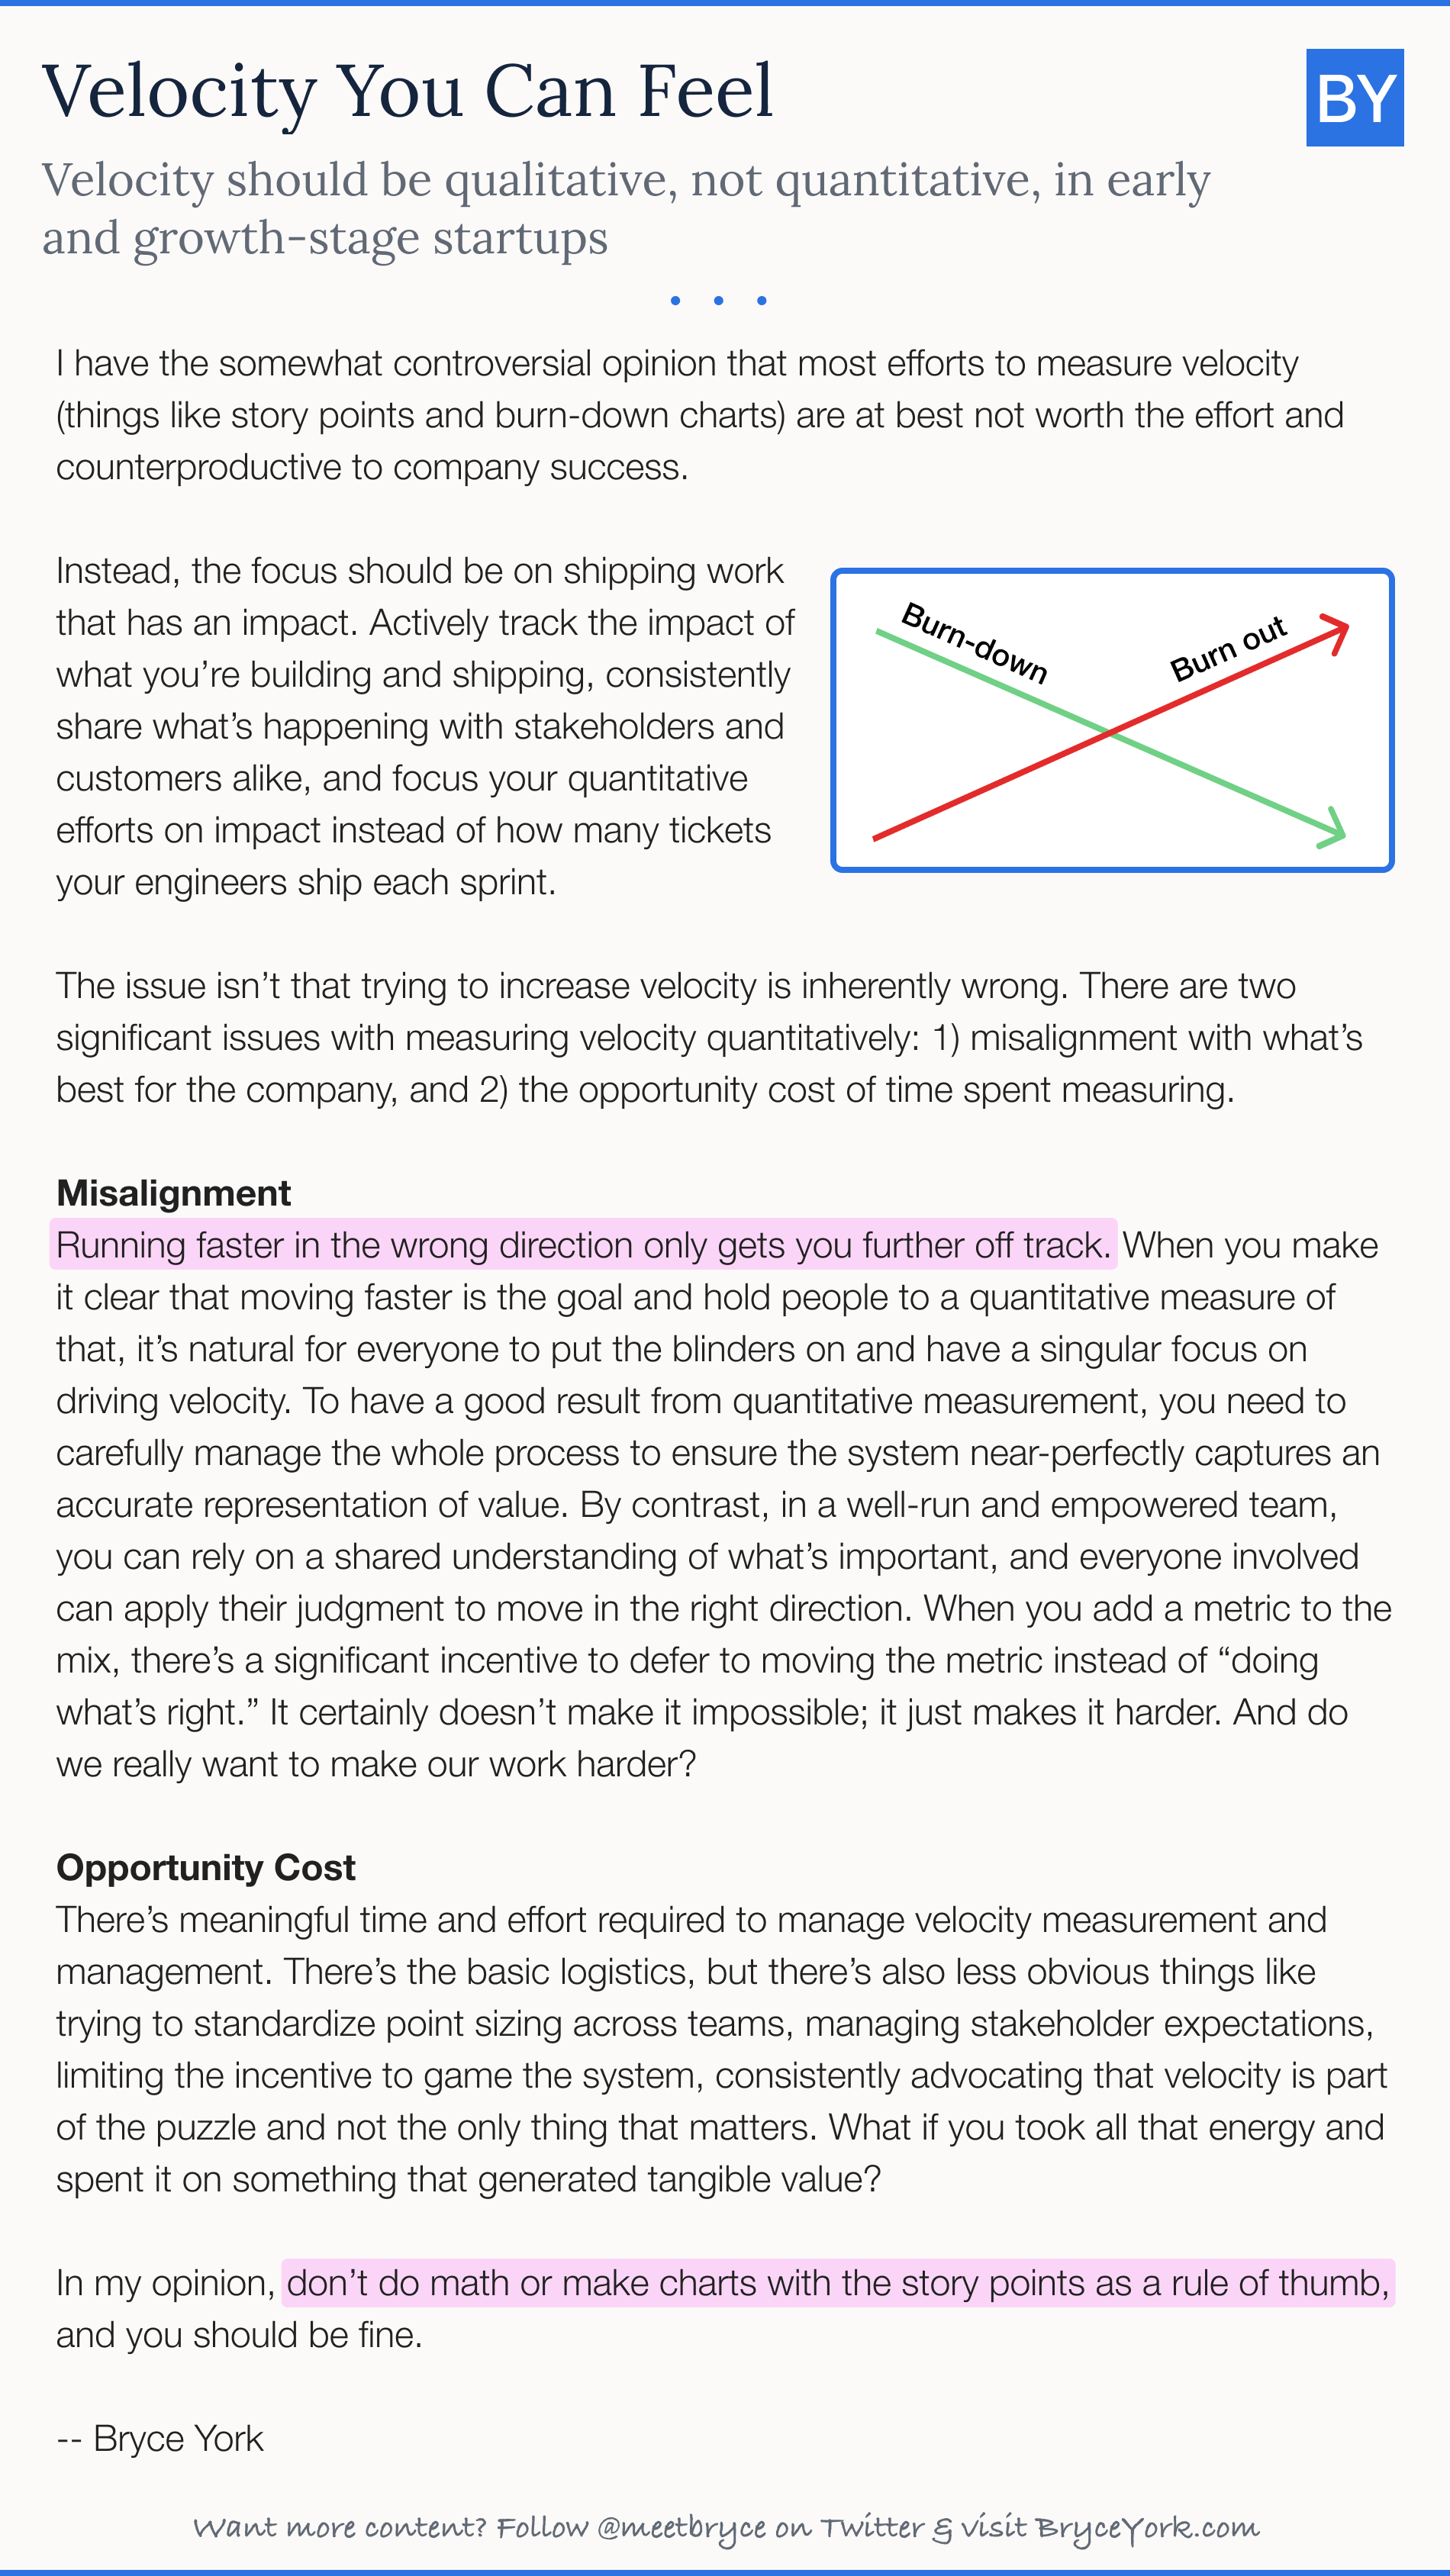 Velocity should be qualitative, not quantitative, in early and growth-stage startups